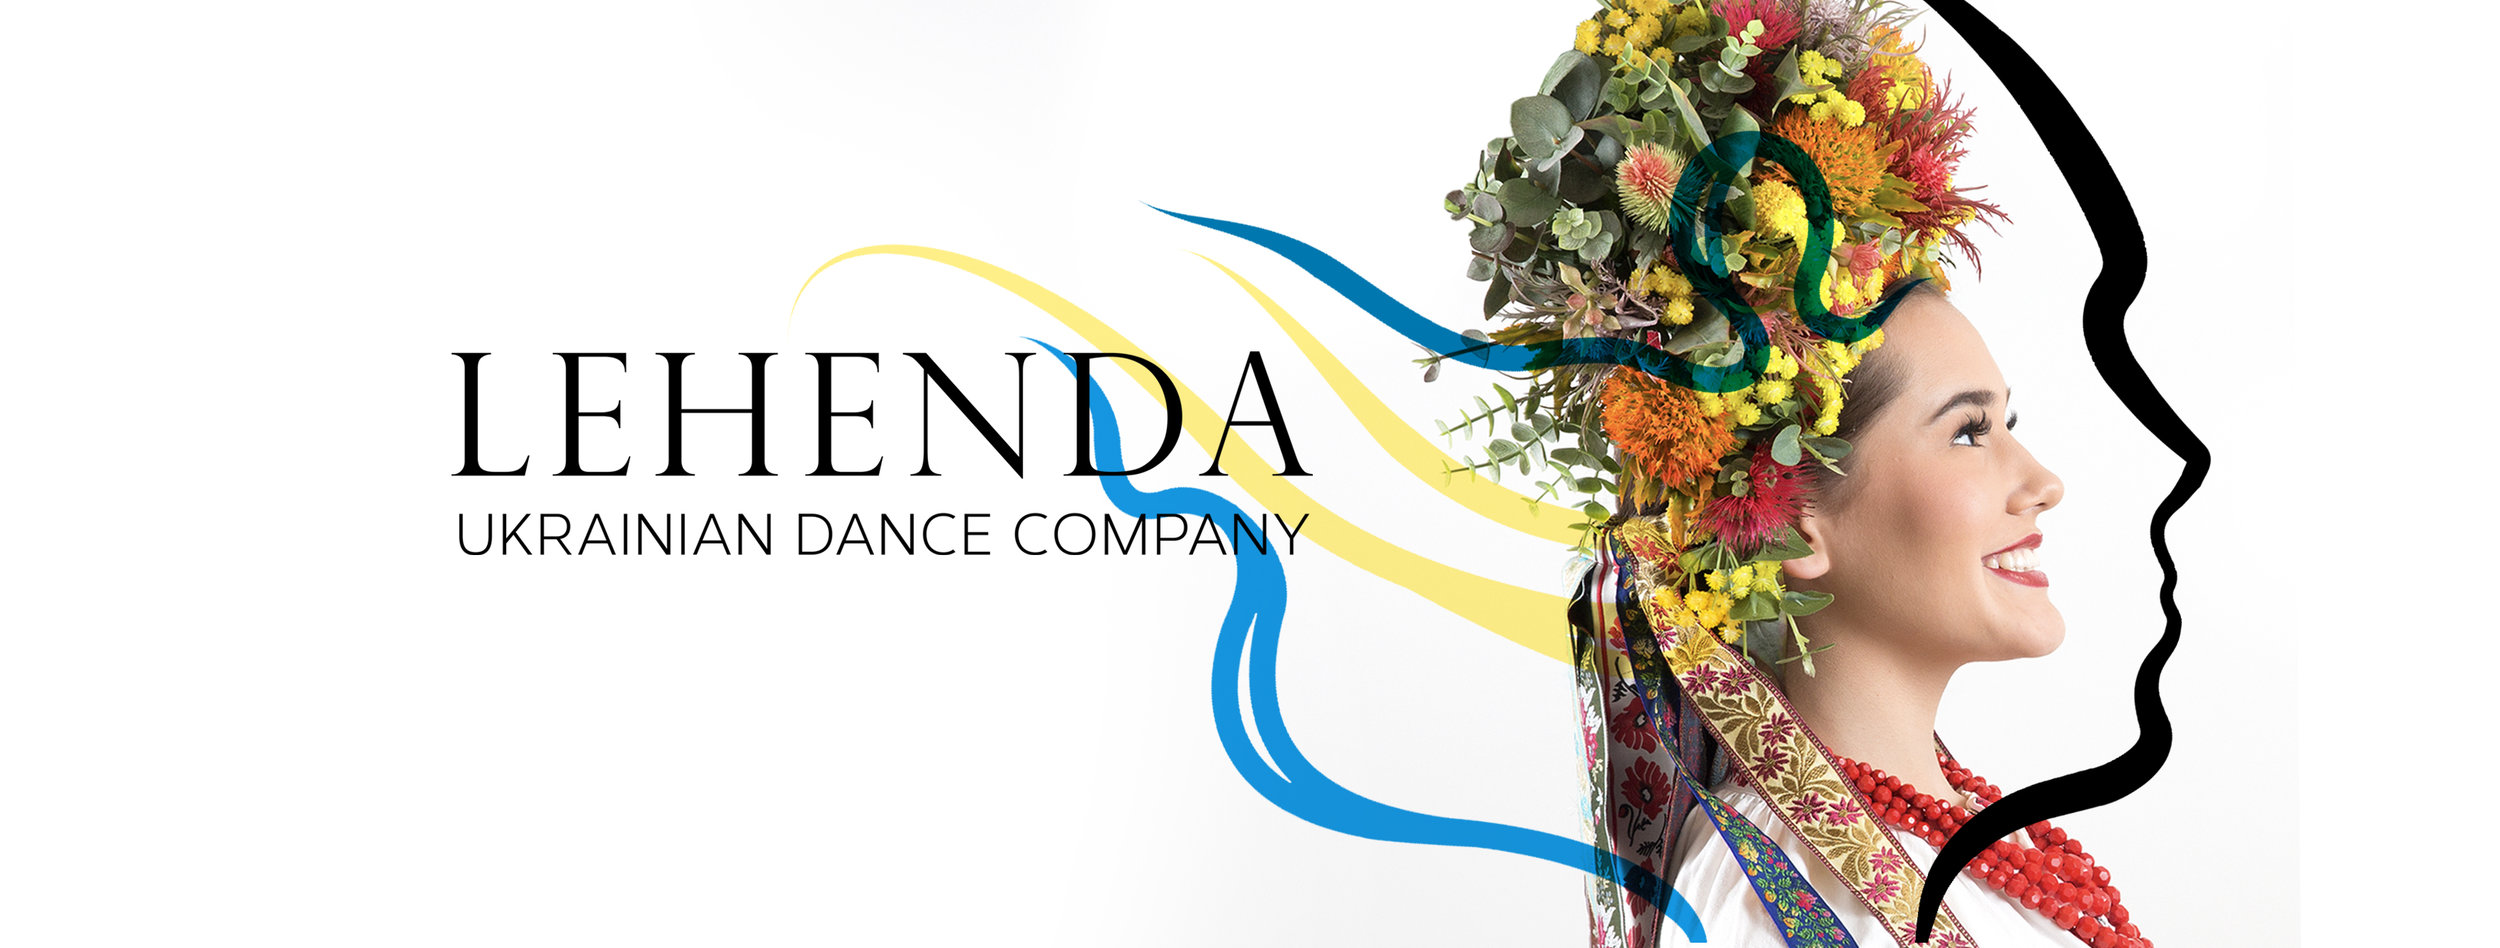 New_lehenda_home_banner.jpg